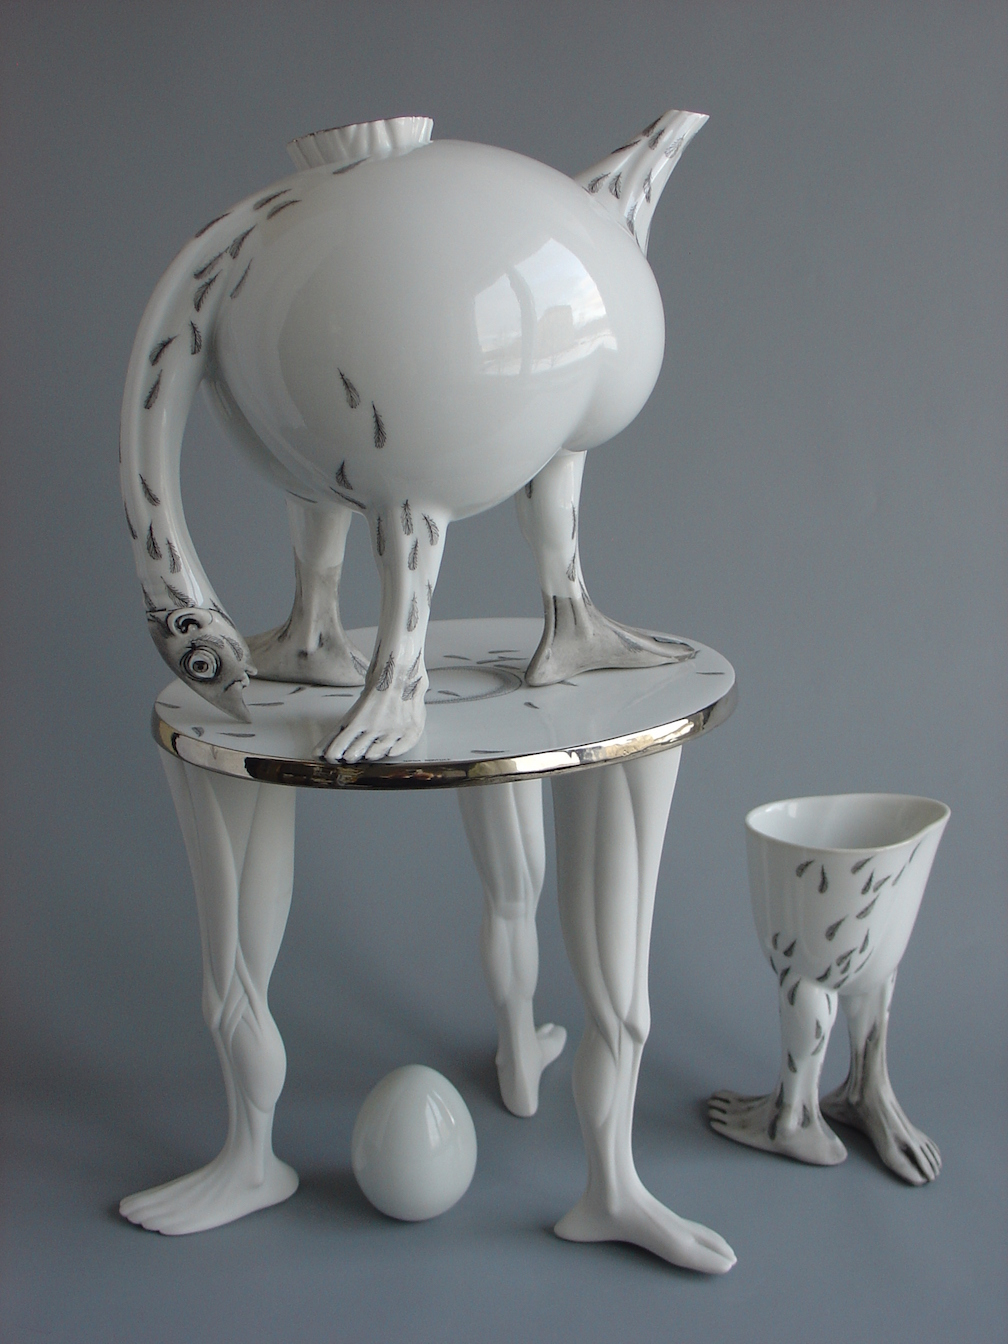 062. OSTRICH. Teapot, tray, cup (2003)